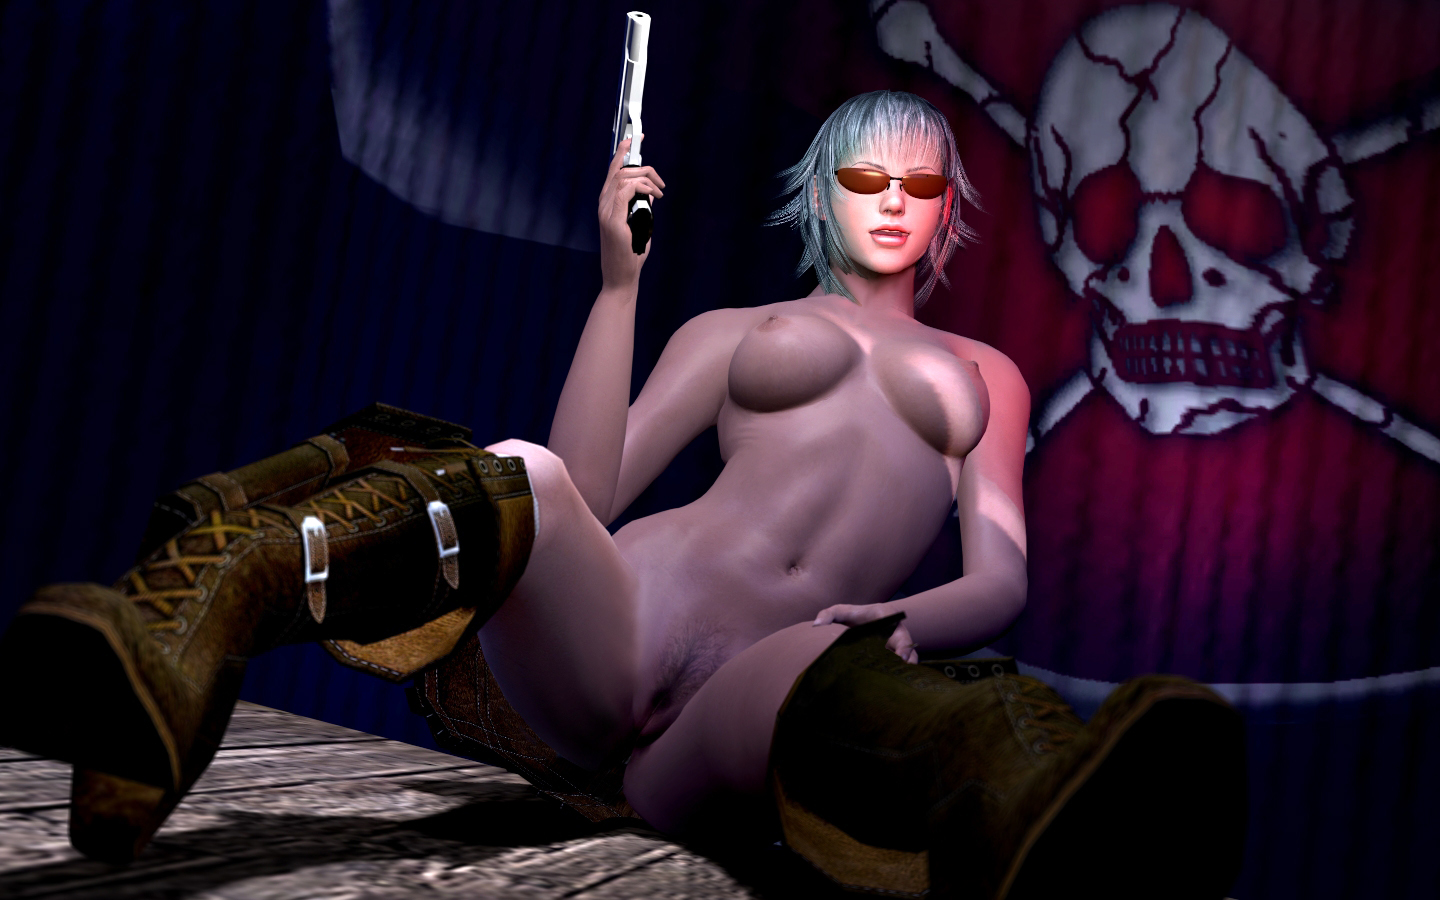 dmc-devil-may-cry-porno